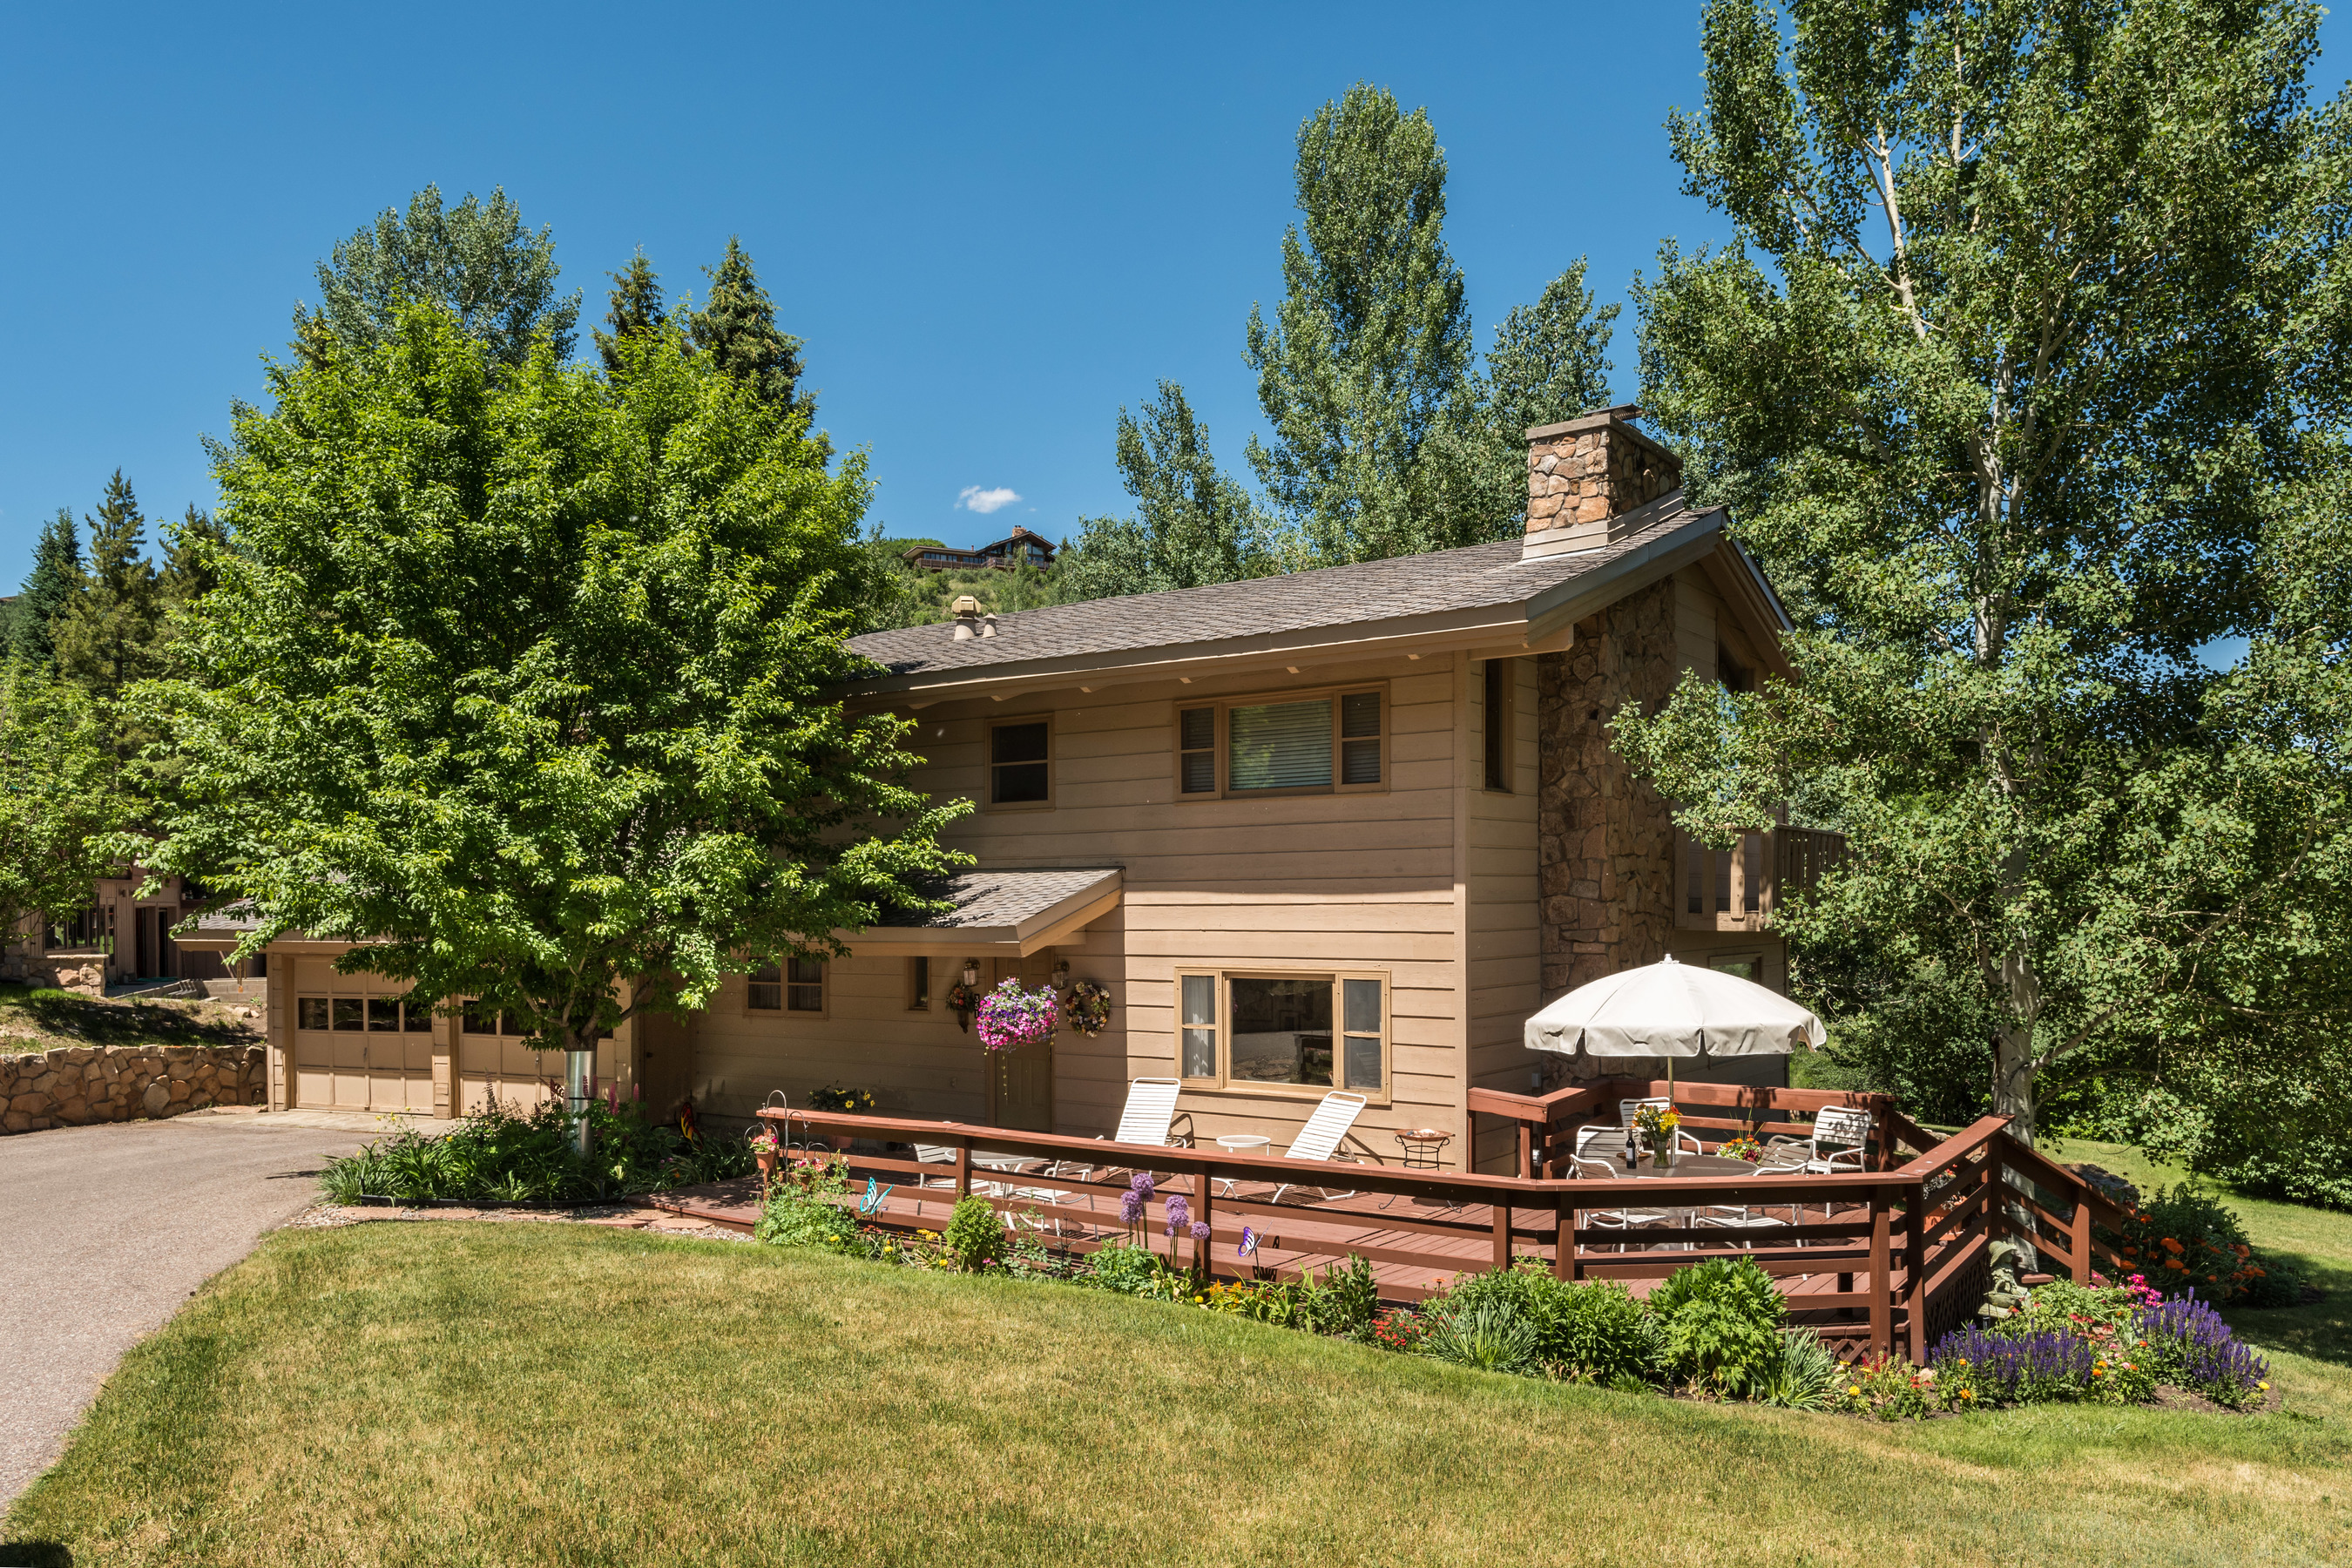 Einfamilienhaus für Verkauf beim Charming Home in Great Family Neighborhood 351 Meadow Road Snowmass Village, Colorado, 81615 Vereinigte Staaten